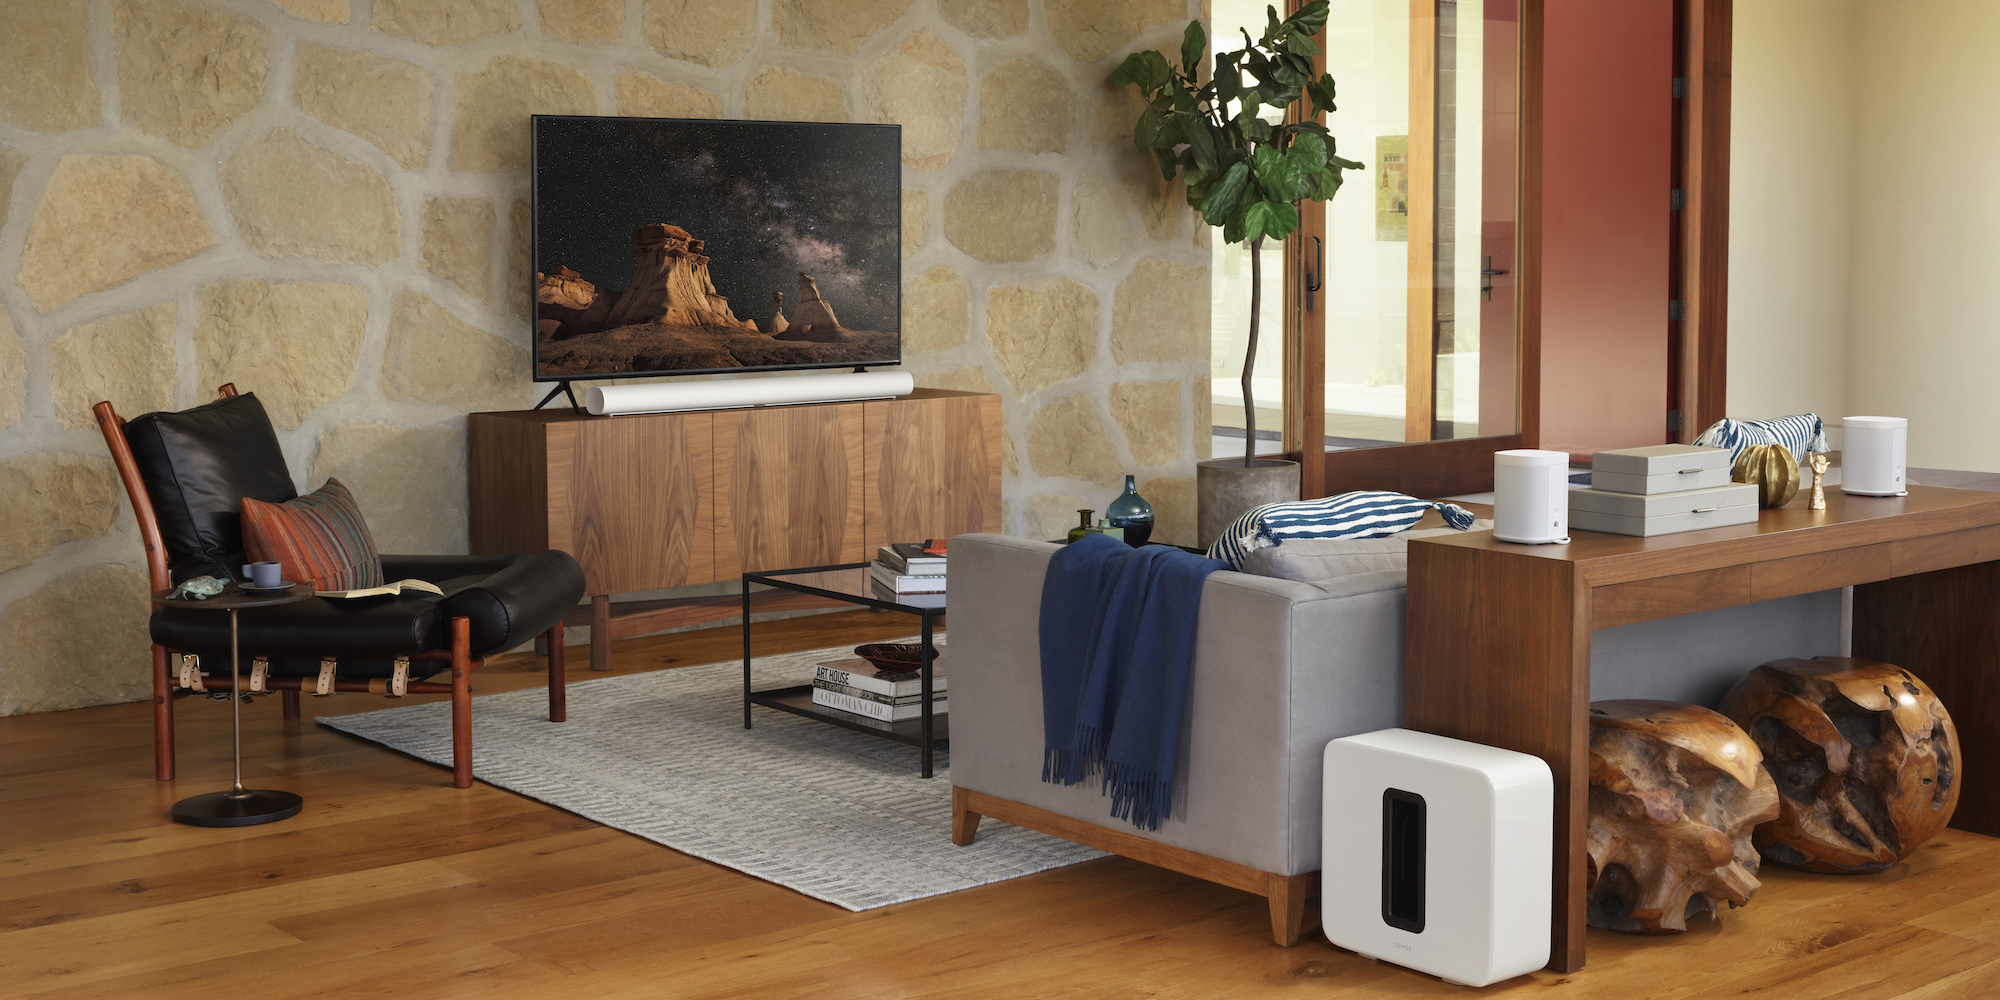 Incorporate High-End Speakers in These 3 Areas of Your Home